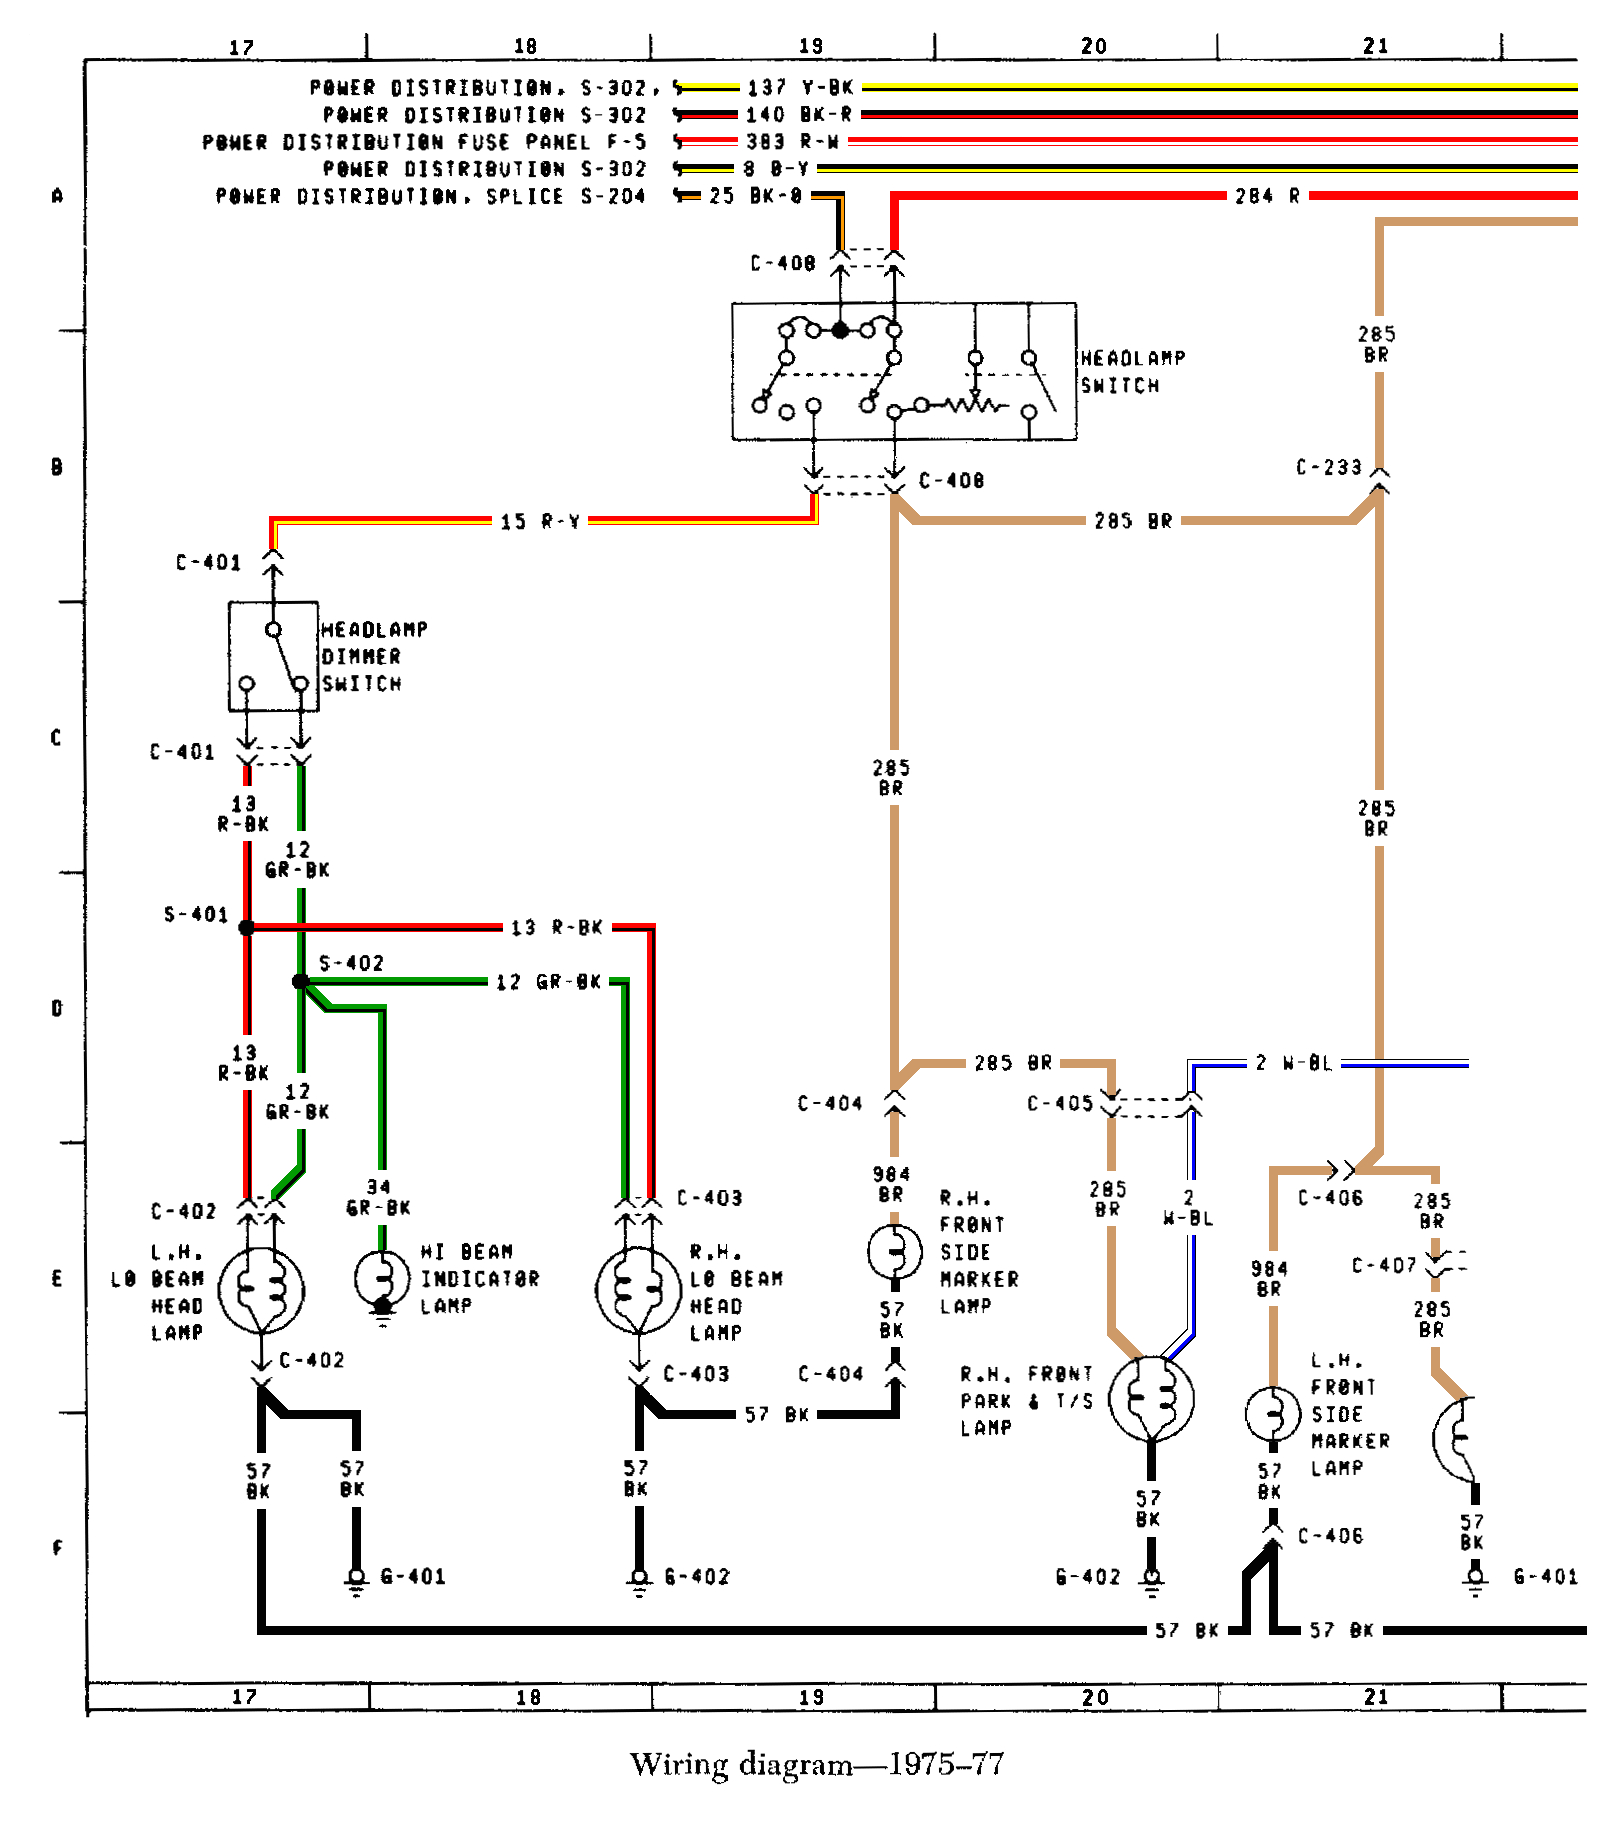 1977 Bronco Wiring Diagrams - Pioneer Deh Car Stereo Installation Wiring  Harness Color Code 1900 - hinoengine.sususehat.decorresine.itWiring Diagram Resource